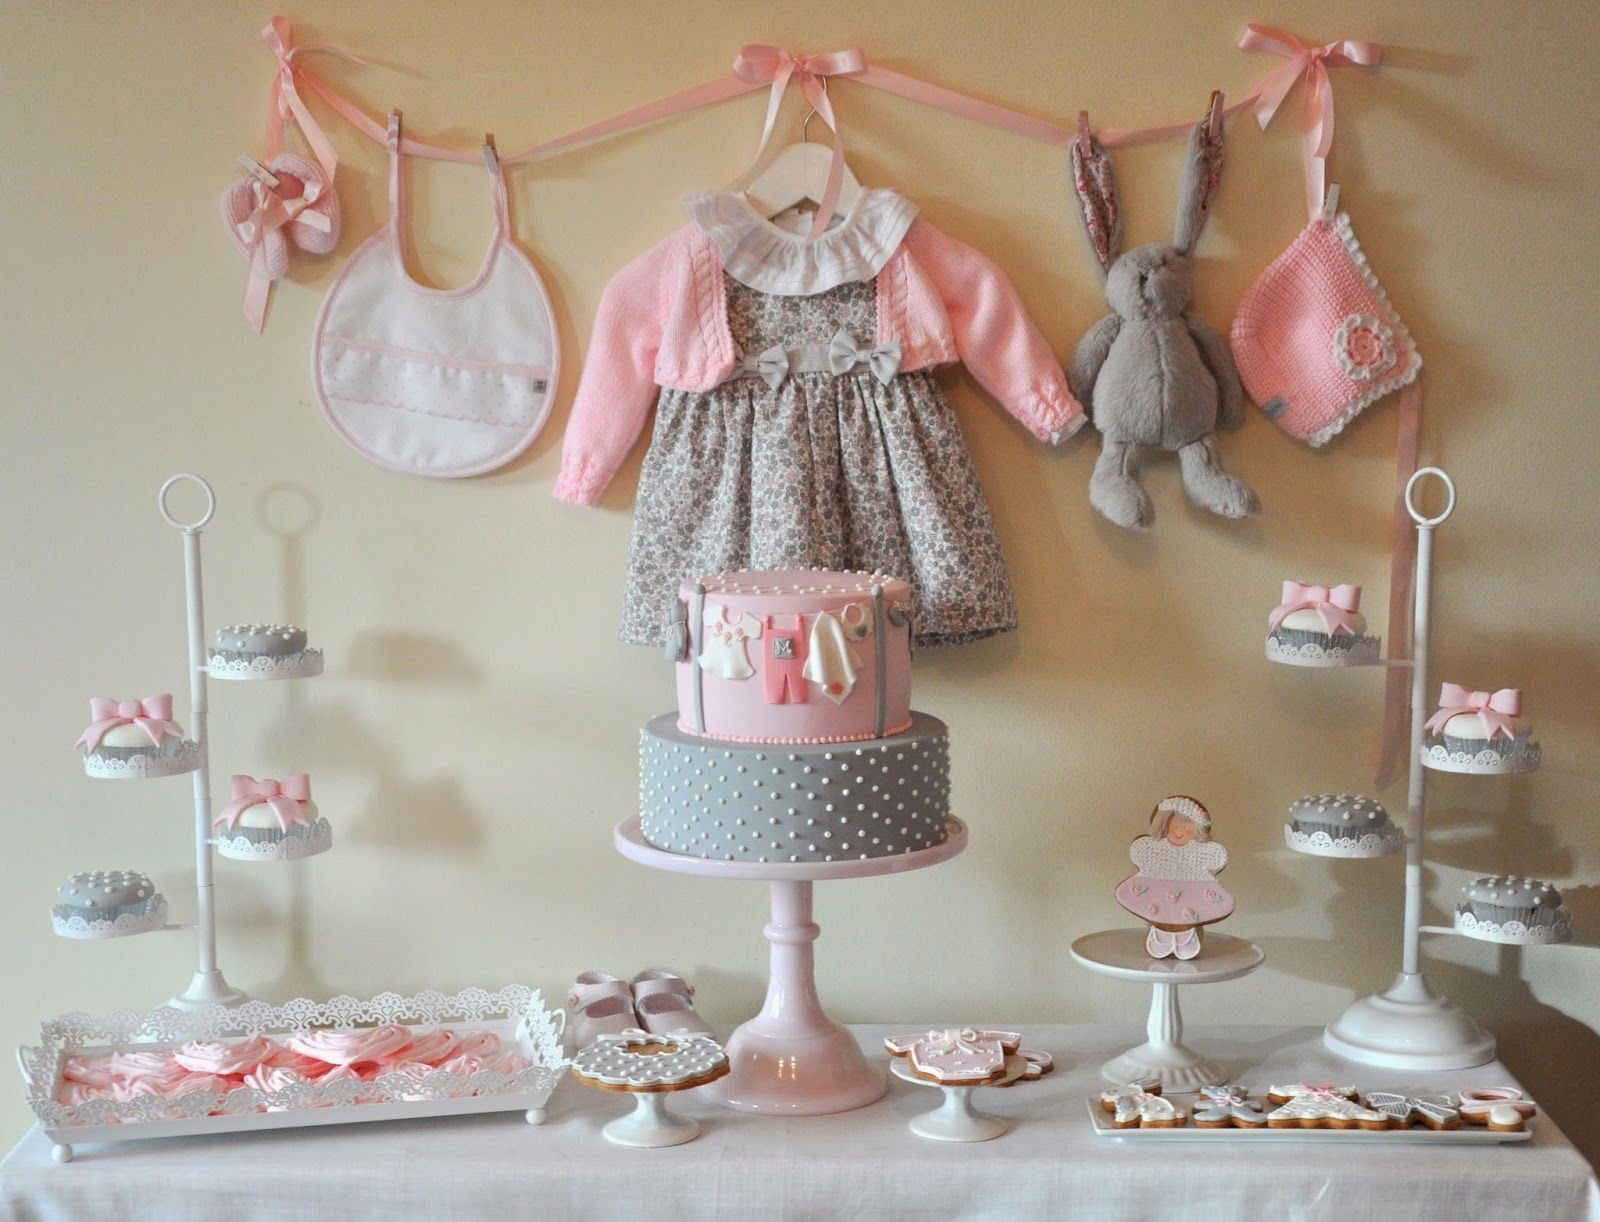 Baby Shower, From Www.cupcake Franciscaneves.blogspot.com